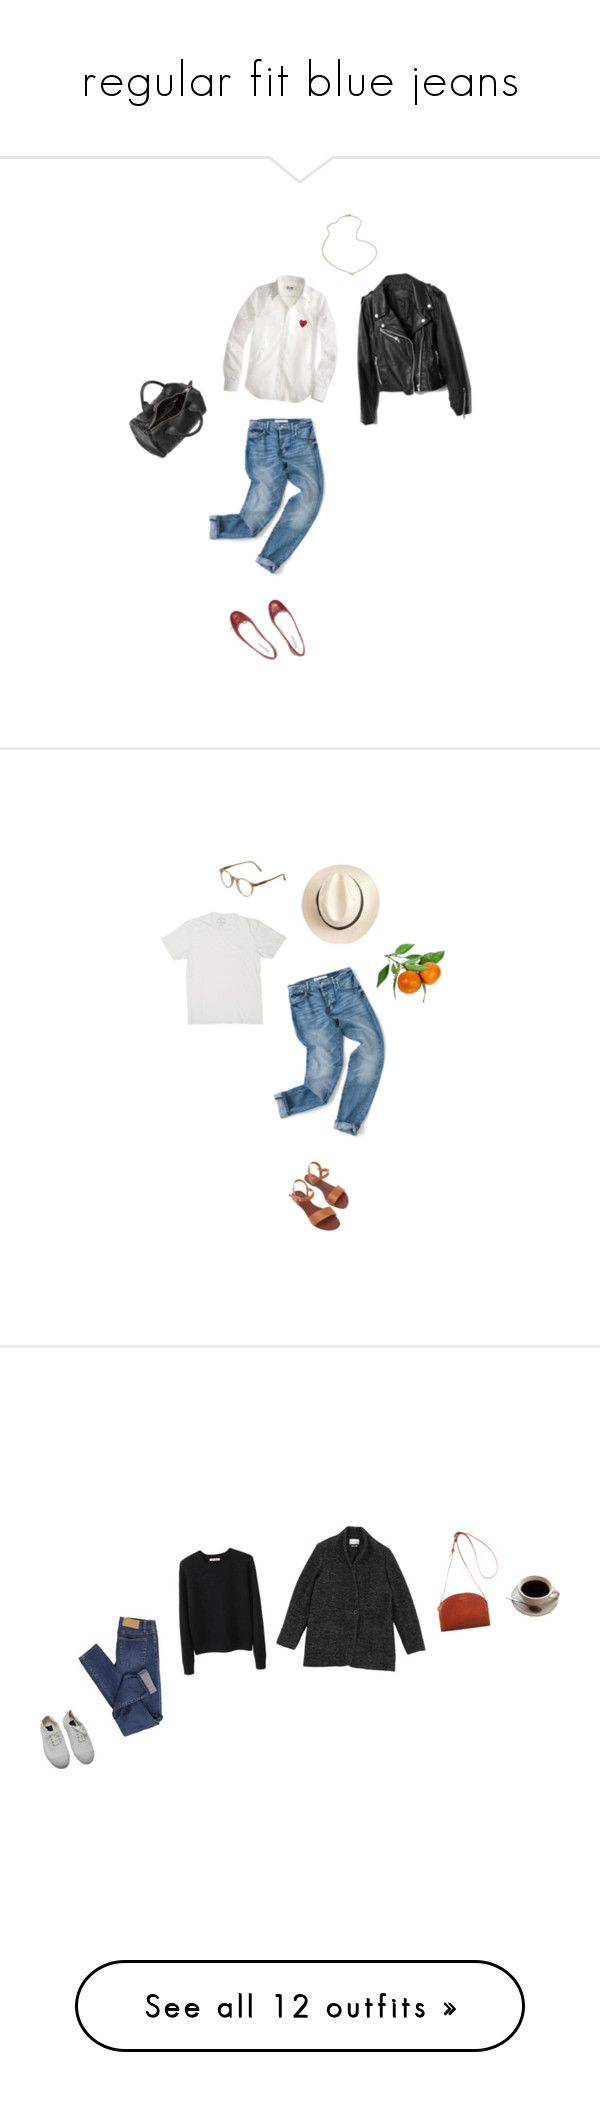 """""""regular fit blue jeans"""" by youthcult ❤ liked on Polyvore featuring Repetto, J.Crew, Jennifer Zeuner, Alexander Wang, Whiteley, Cutler and Gross, Marc Jacobs, Oroton, Organic by John Patrick and Étoile Isabel Marant"""